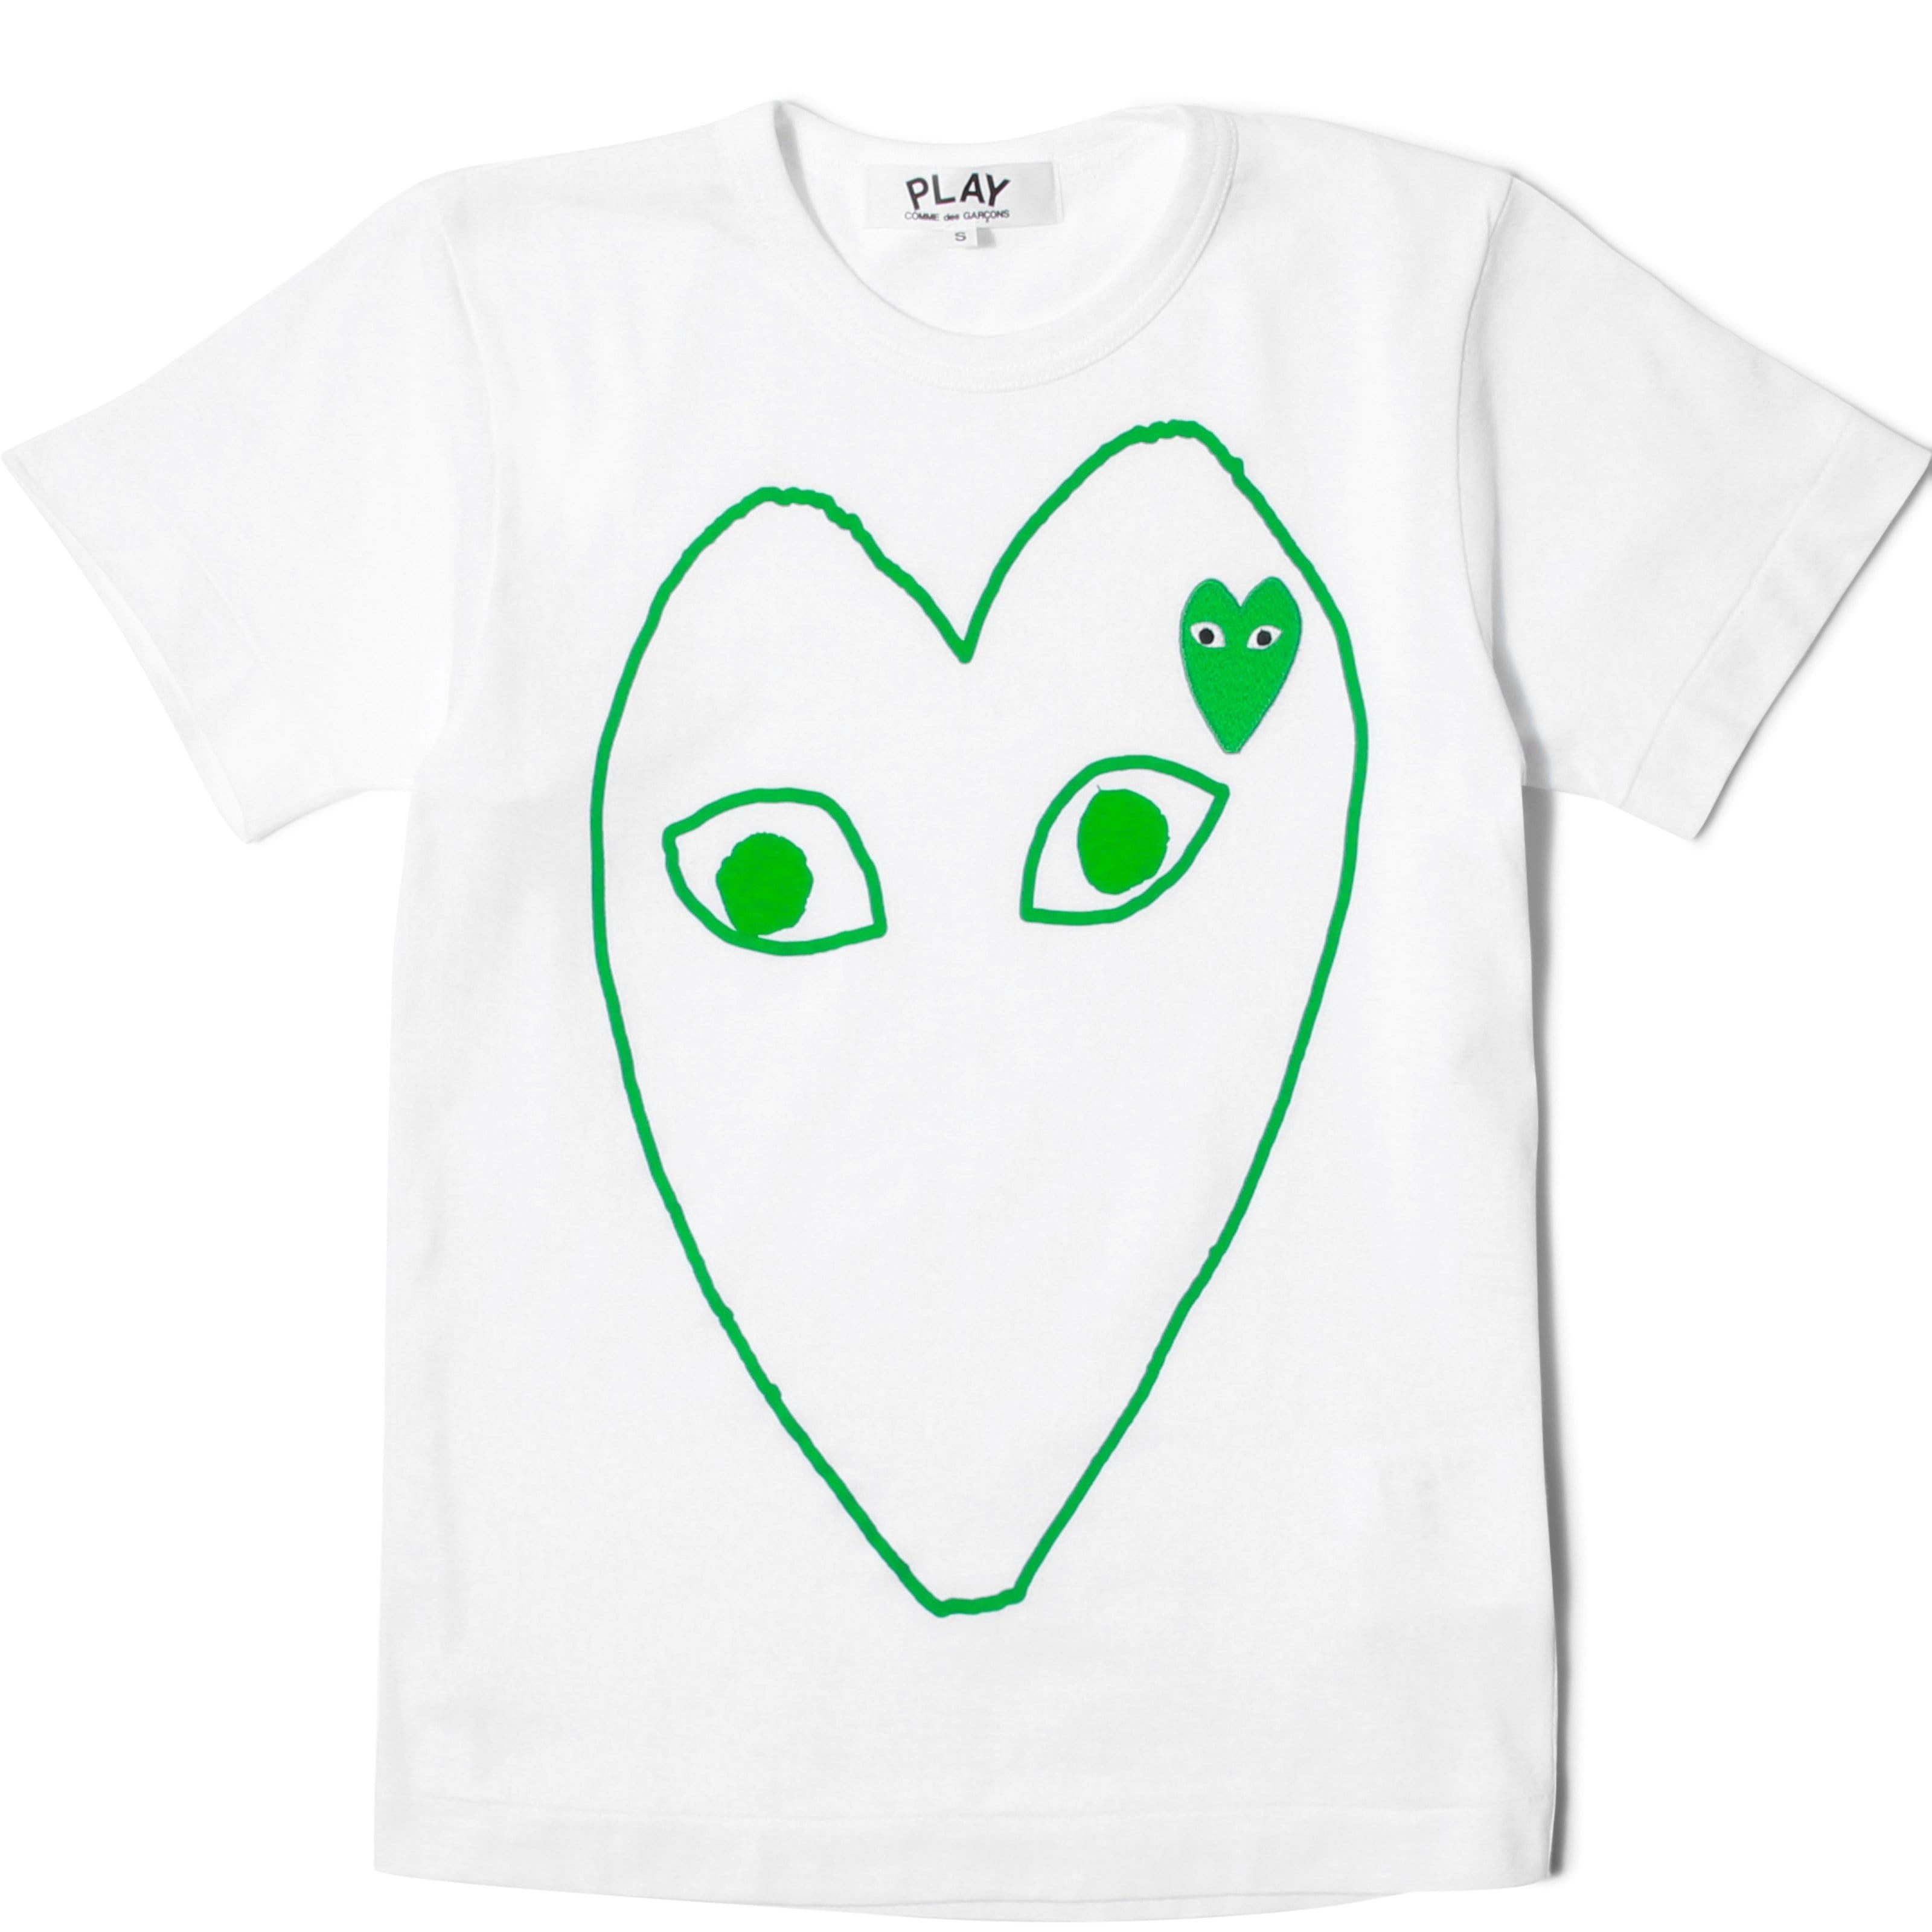 Comme des Garçons Play T-Shirts WOMEN'S LARGE OUTLINE GREEN HEART & GREEN LOGO T-SHIRT